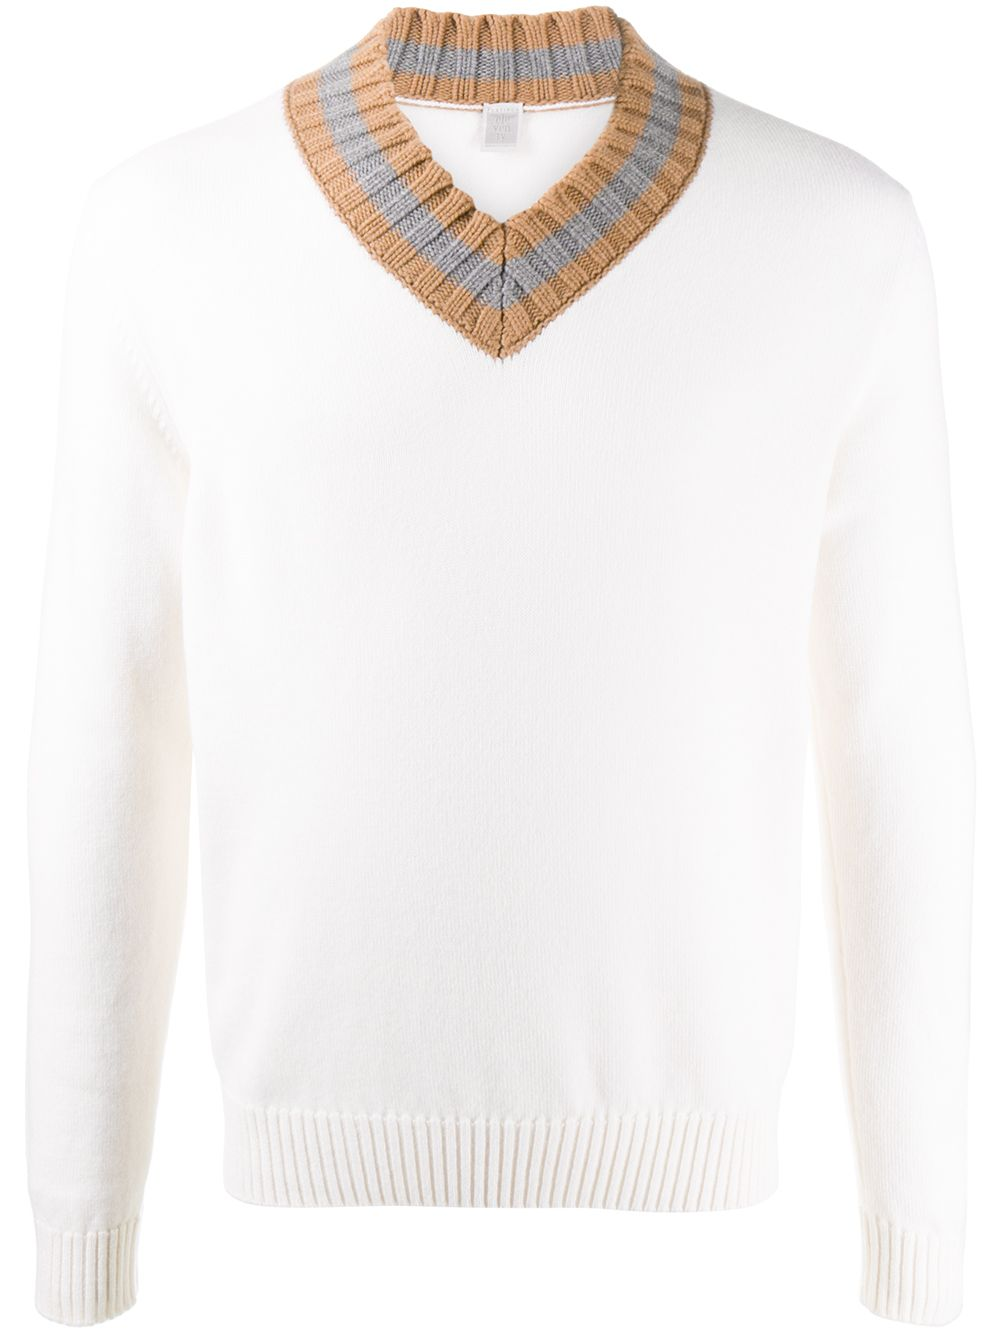 white wool V collar jumper with contrasting grey details ELEVENTY |  | B76MAGB12-MAG0B00401-14